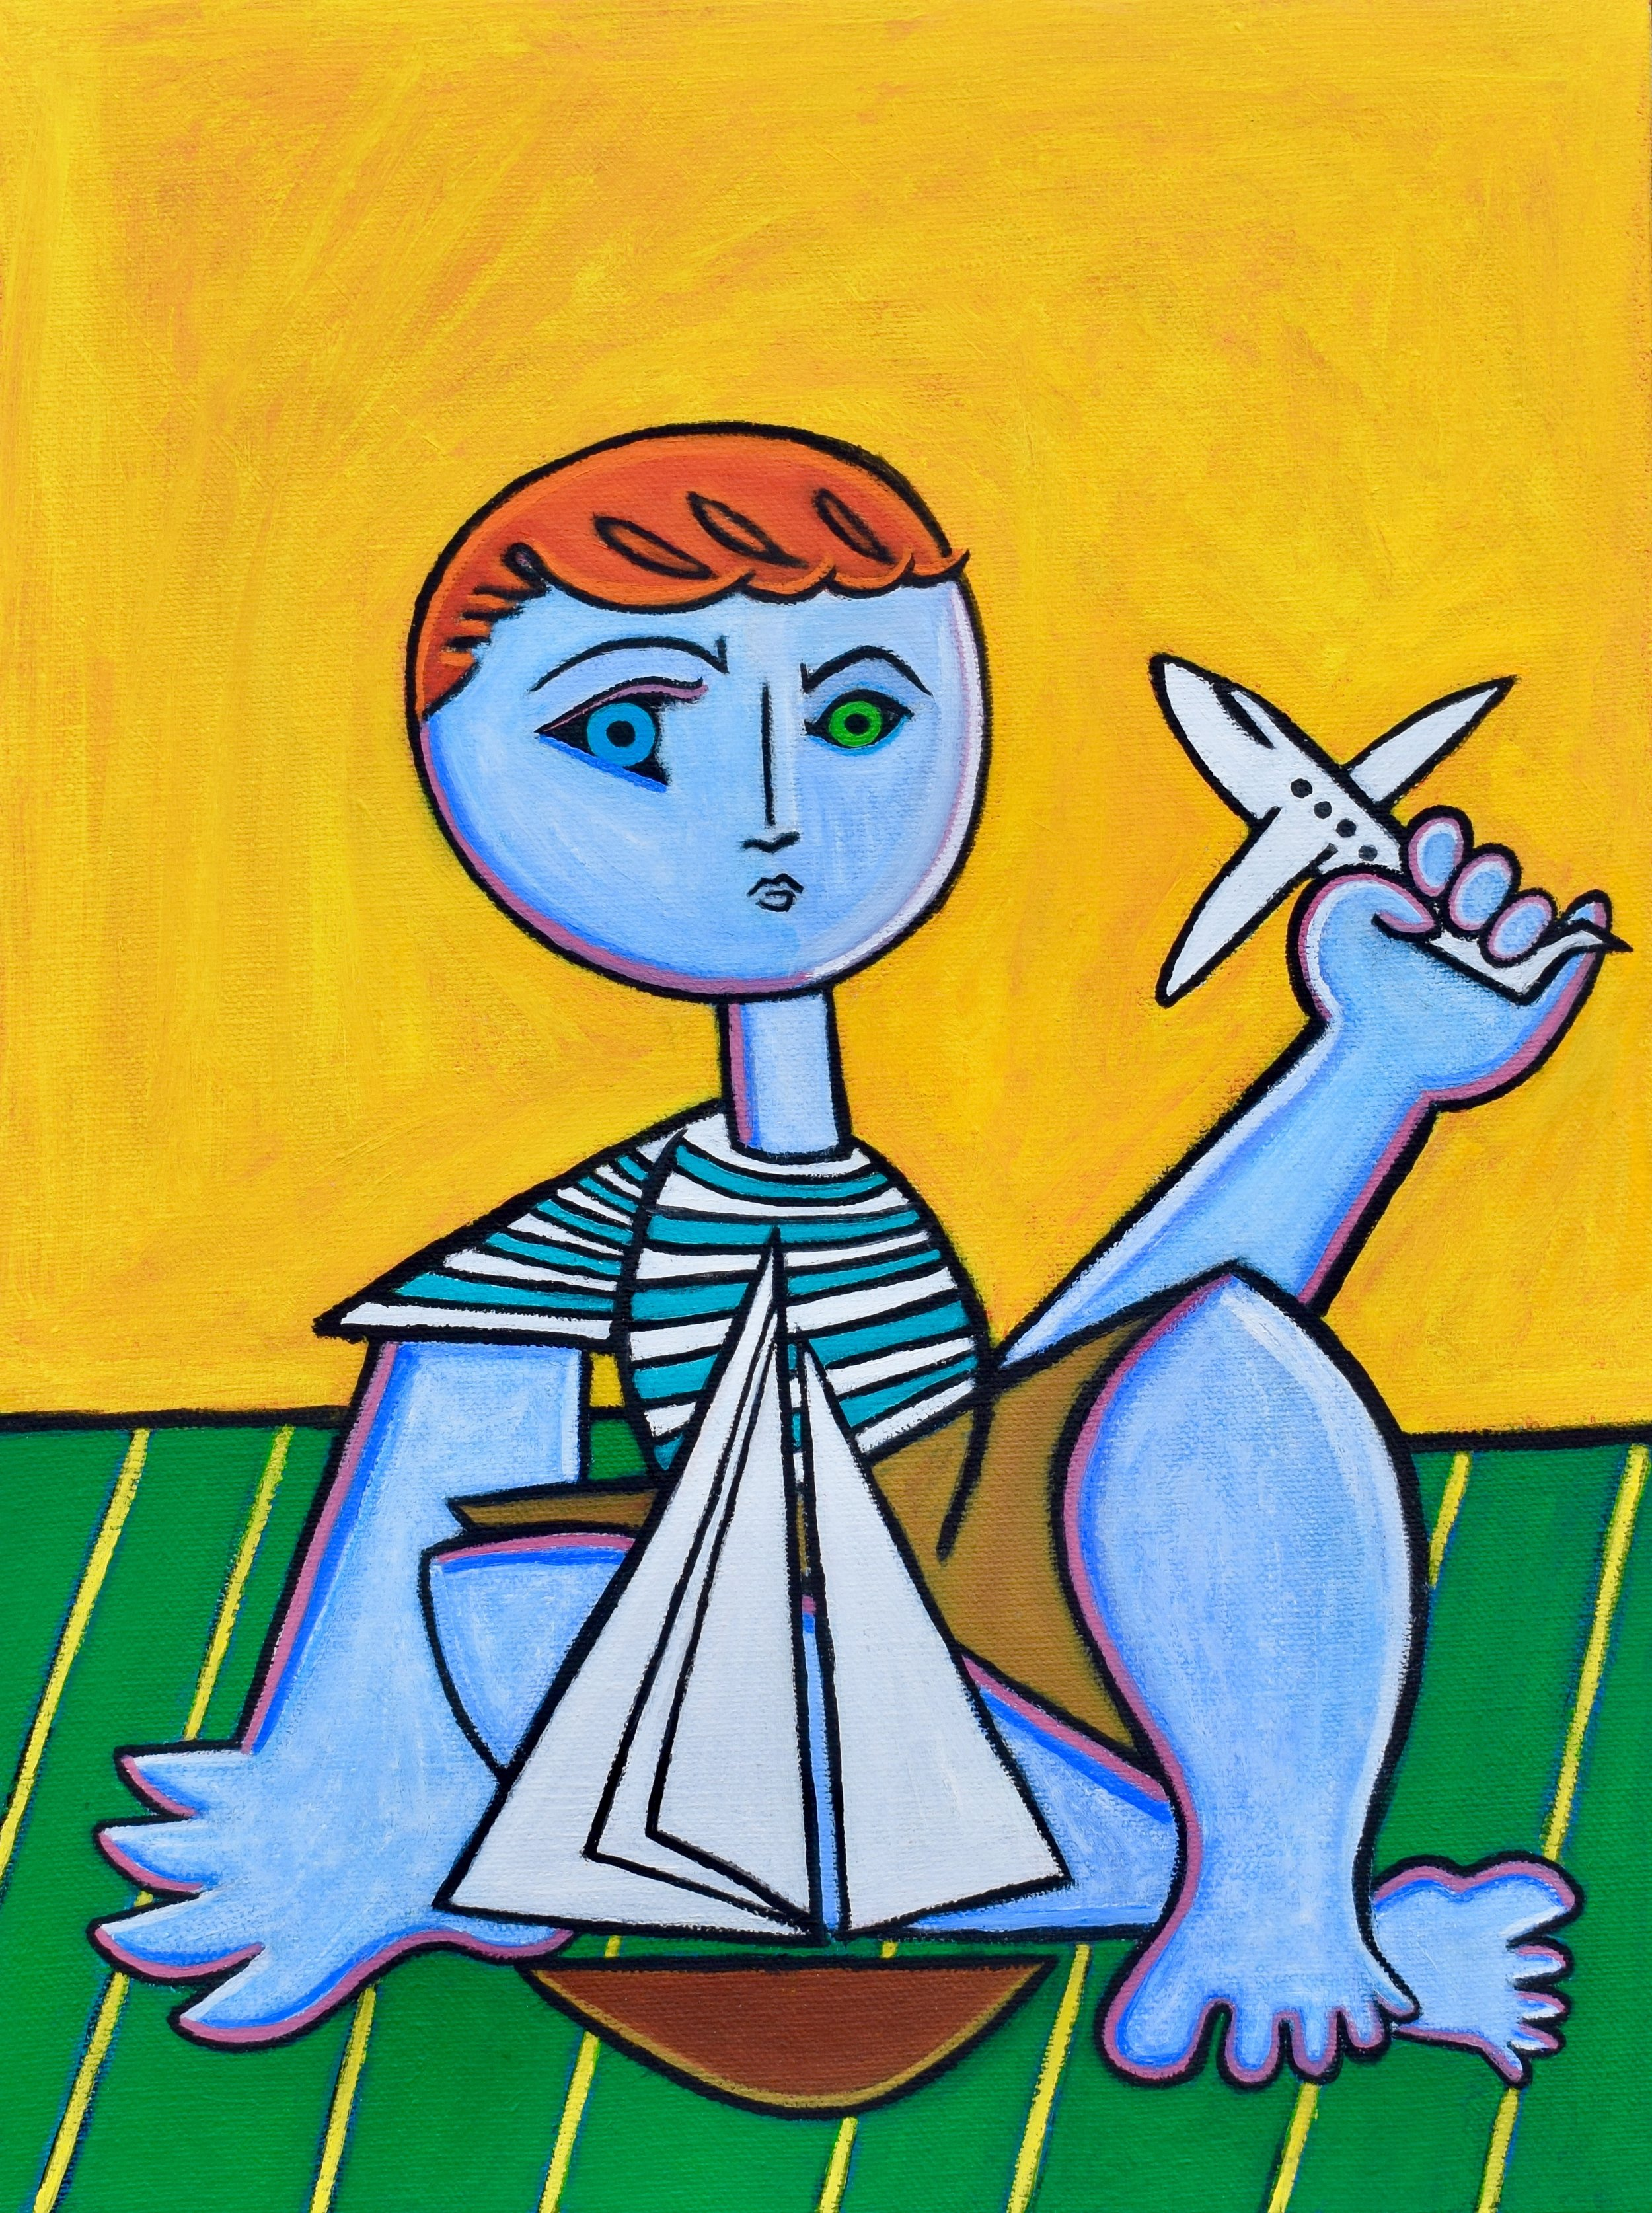 boy-with-boat-and-plane-painting-paul-zepeda-wetpaintnyc.jpg